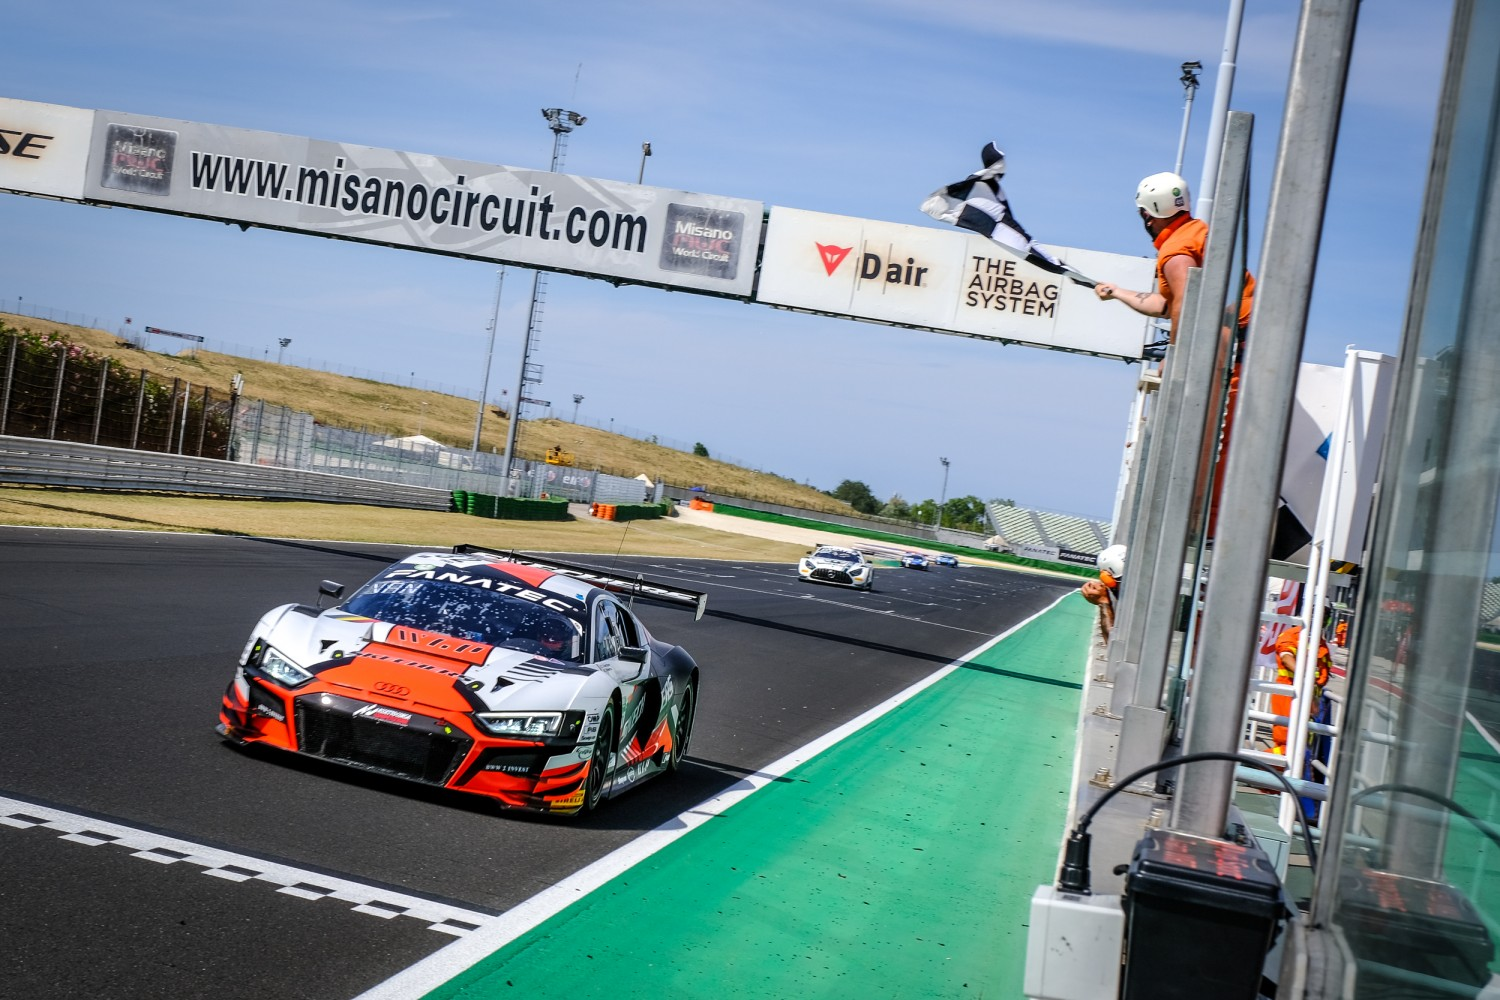 Weerts and Vanthoor untouchable at Misano as Team WRT Audi earns opening race victory